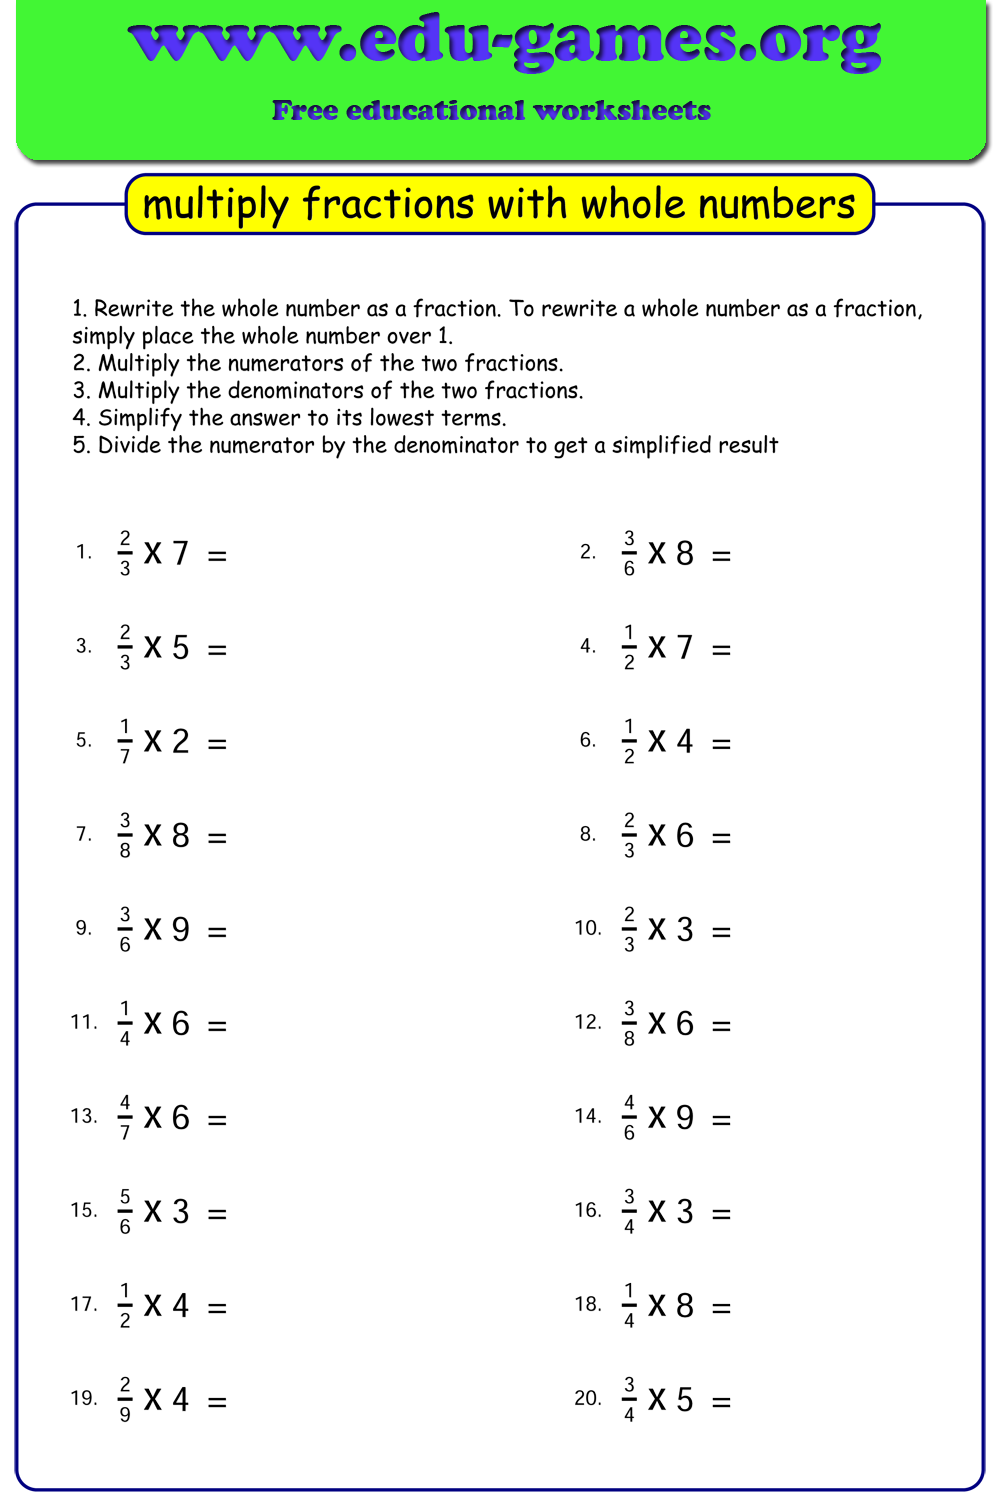 Free Multiplying Fraction With Whole Numbers Worksheets Unlimited Free Worksheets Multiplying Fractions Fractions Math Fraction Games